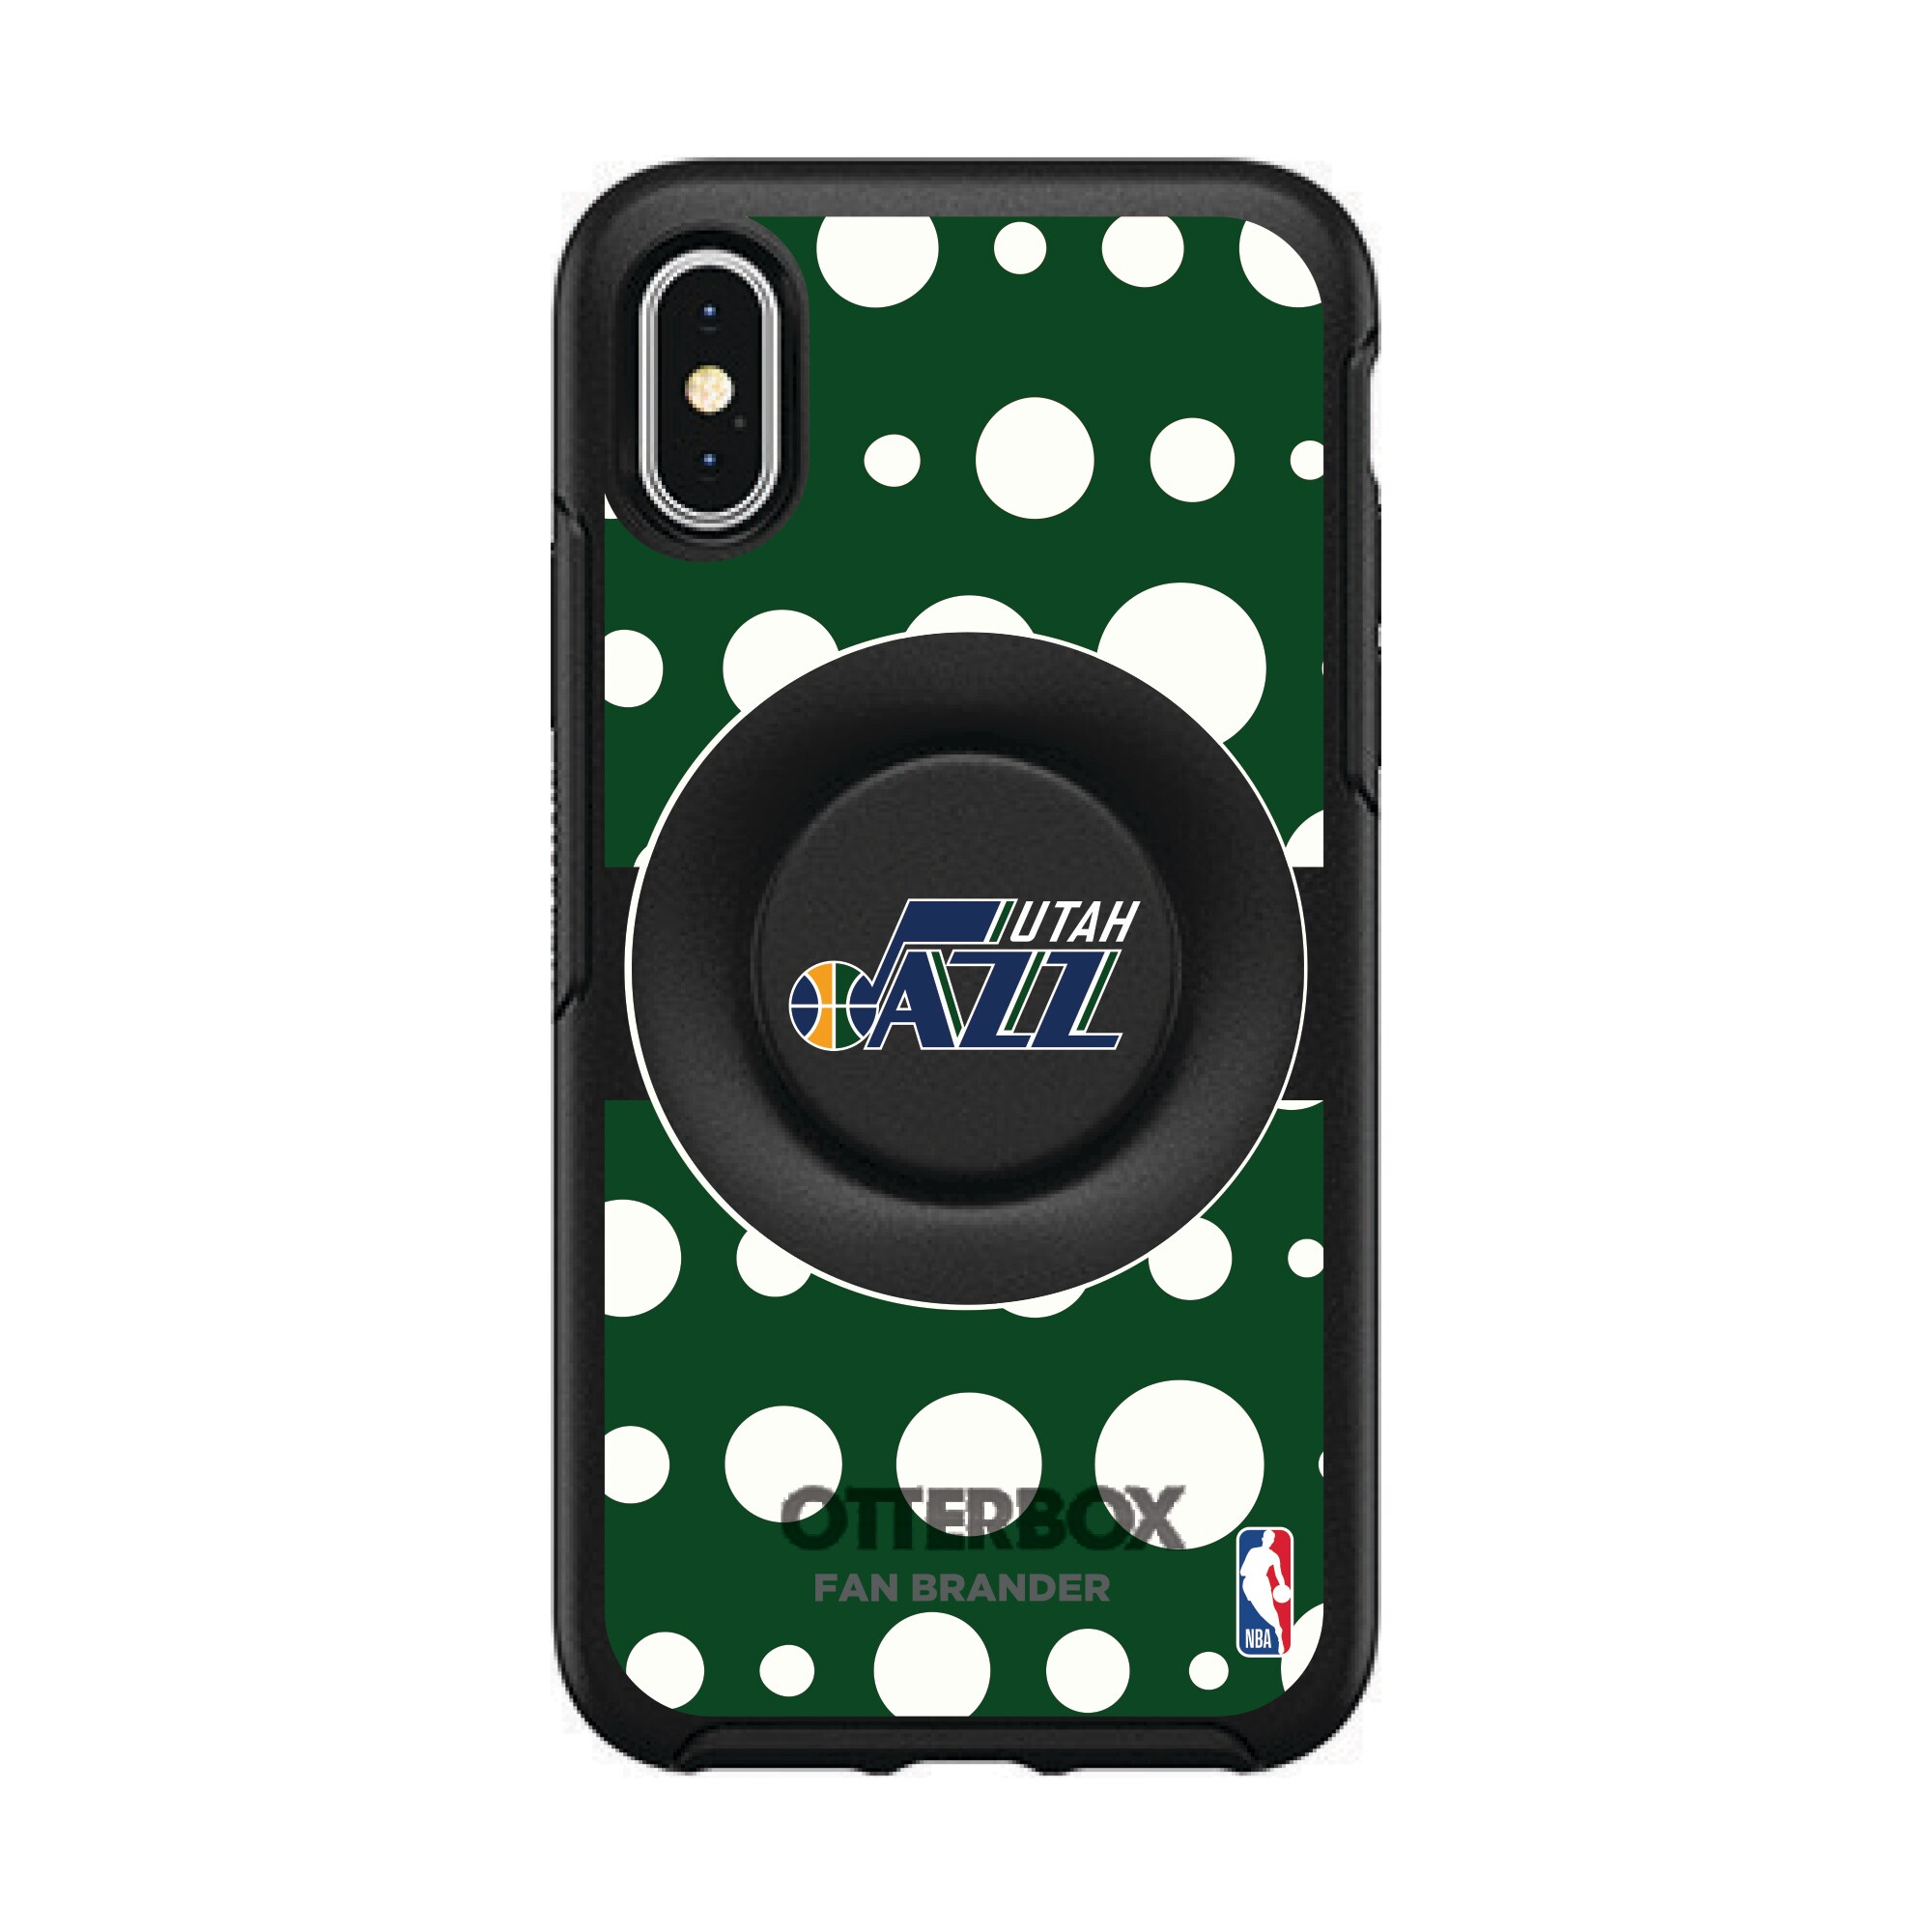 Utah Jazz OtterBox Otter + Pop Polka Dot iPhone Case with Integrated PopSockets PopGrip